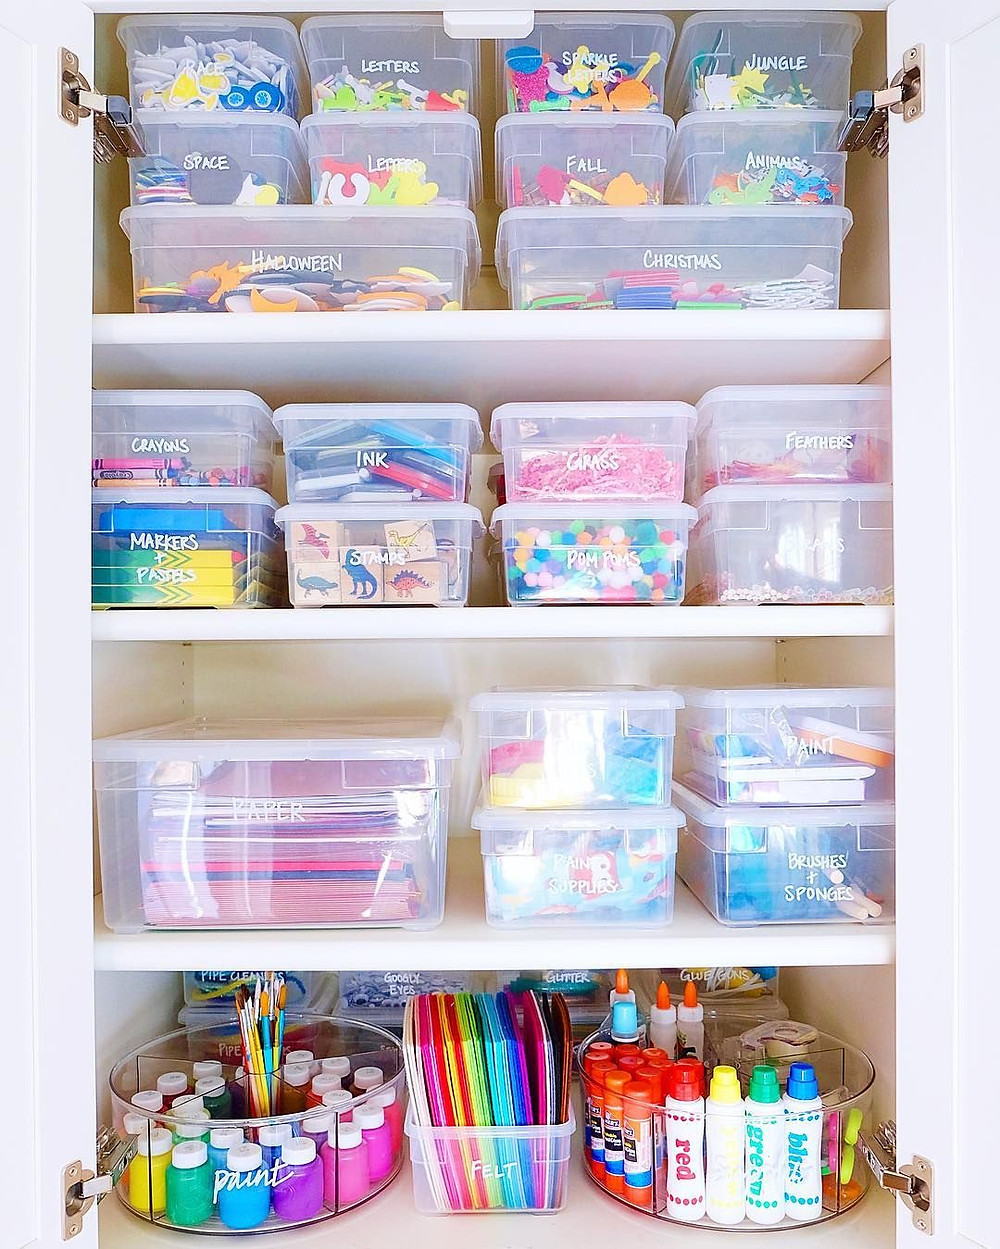 the home edit, storage containers, labels, storage solutions, organizational solutions, clear bins, closet storage, craft storage, staging 2 sell it services